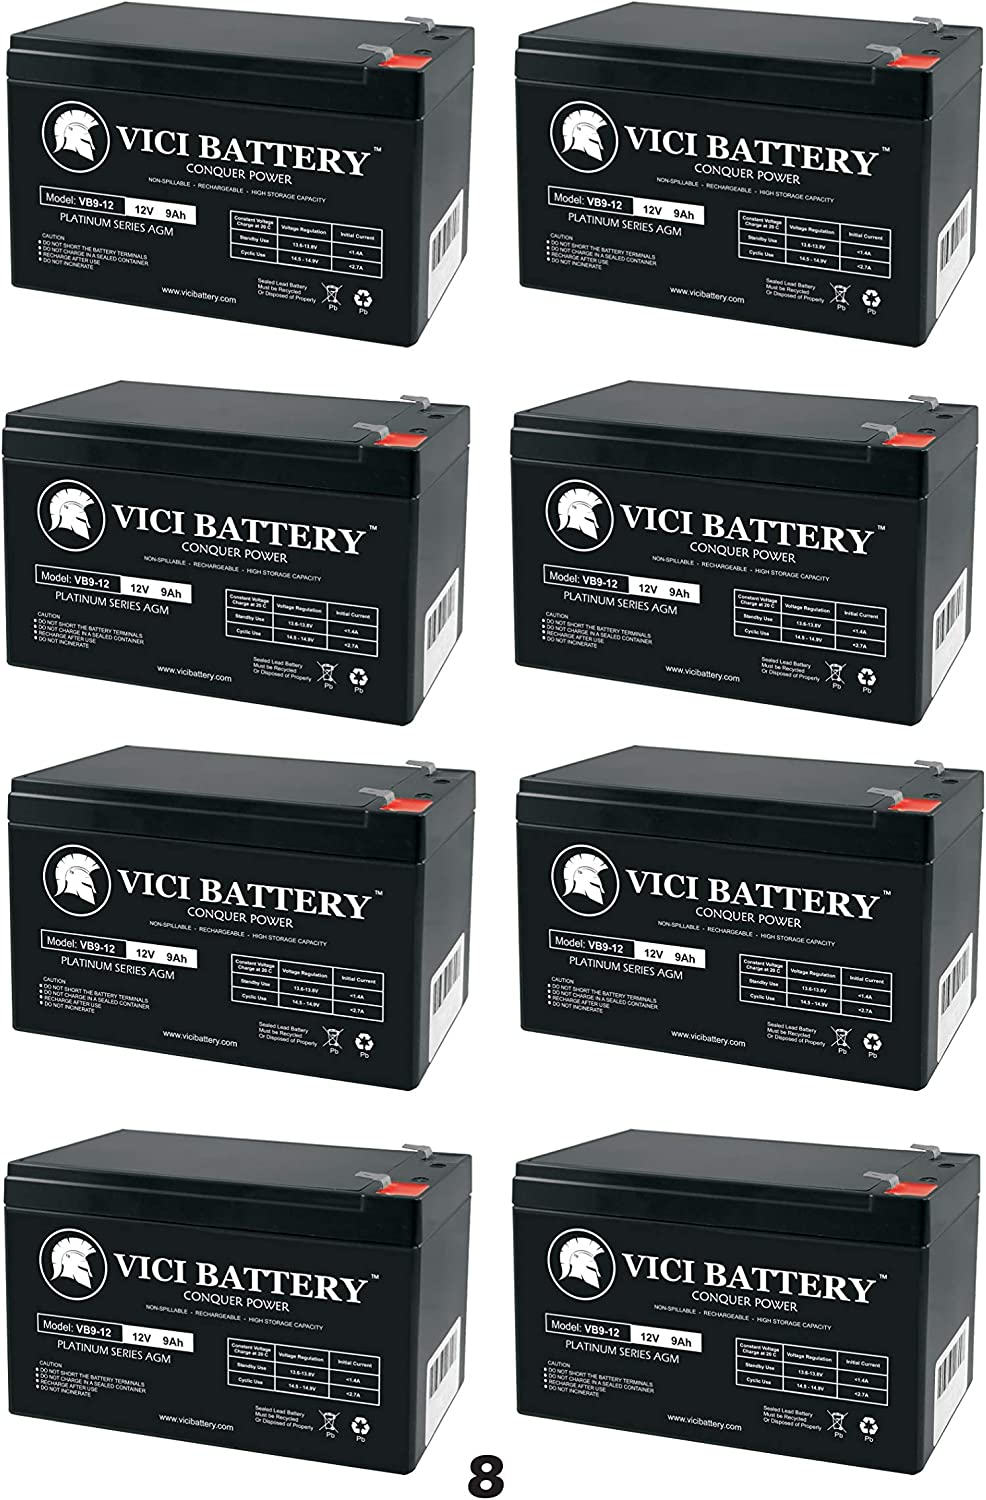 8 Pack Brand Product VICI Battery 12V 9AH Battery for HR1234W Home Alarm